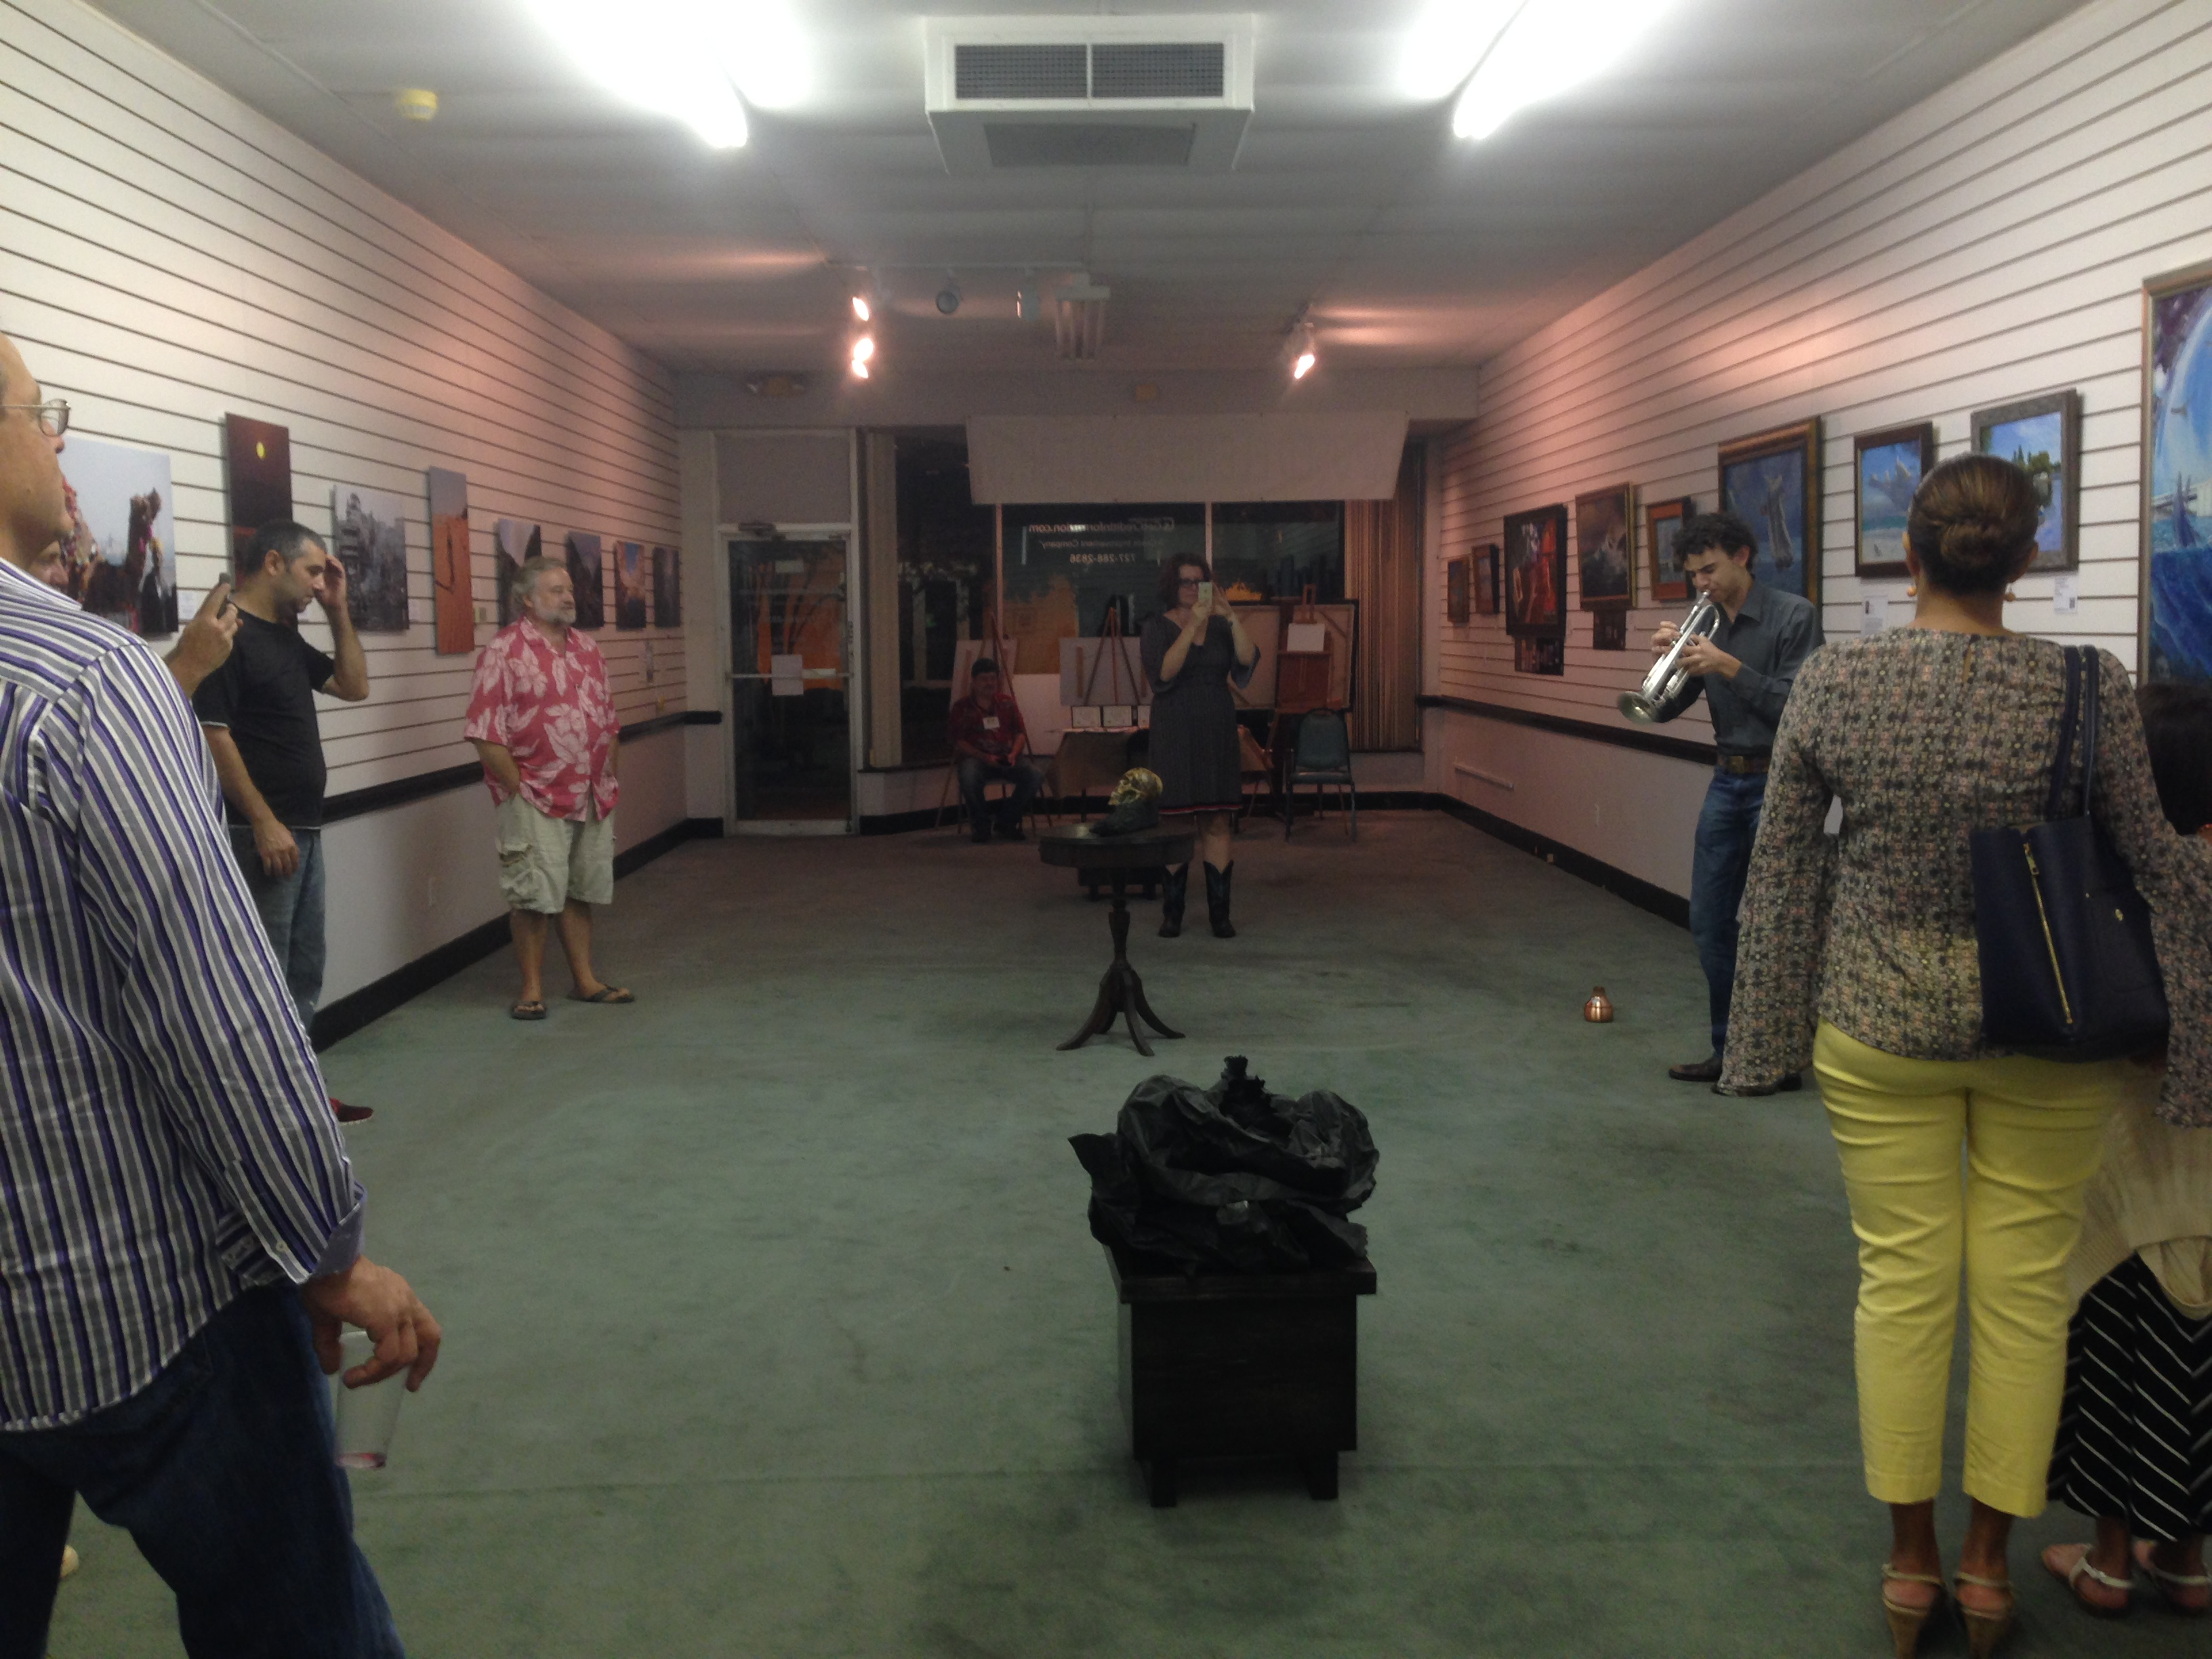 Barbaro-Gould Exposed Elements art show with jazz